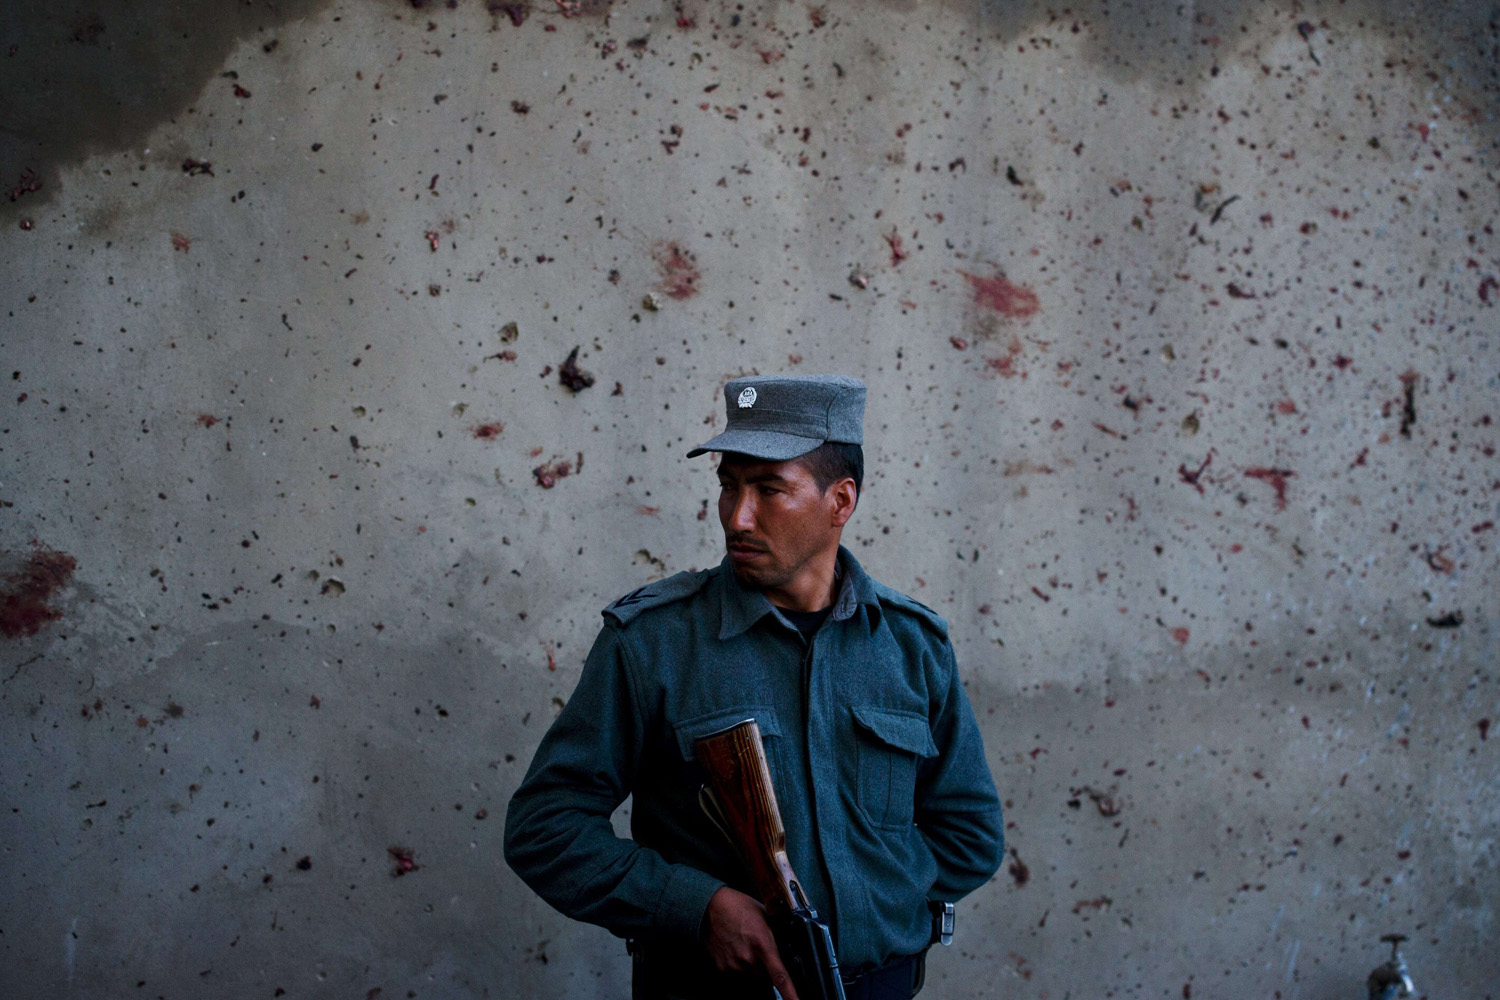 Mar. 25, 2014. An Afghan policeman stands in front of a wall stained by blood spatter at the site of an attack on an election commission office in Kabul. Fifteen people died in violence around Afghanistan less than a fortnight before the country's presidential poll.